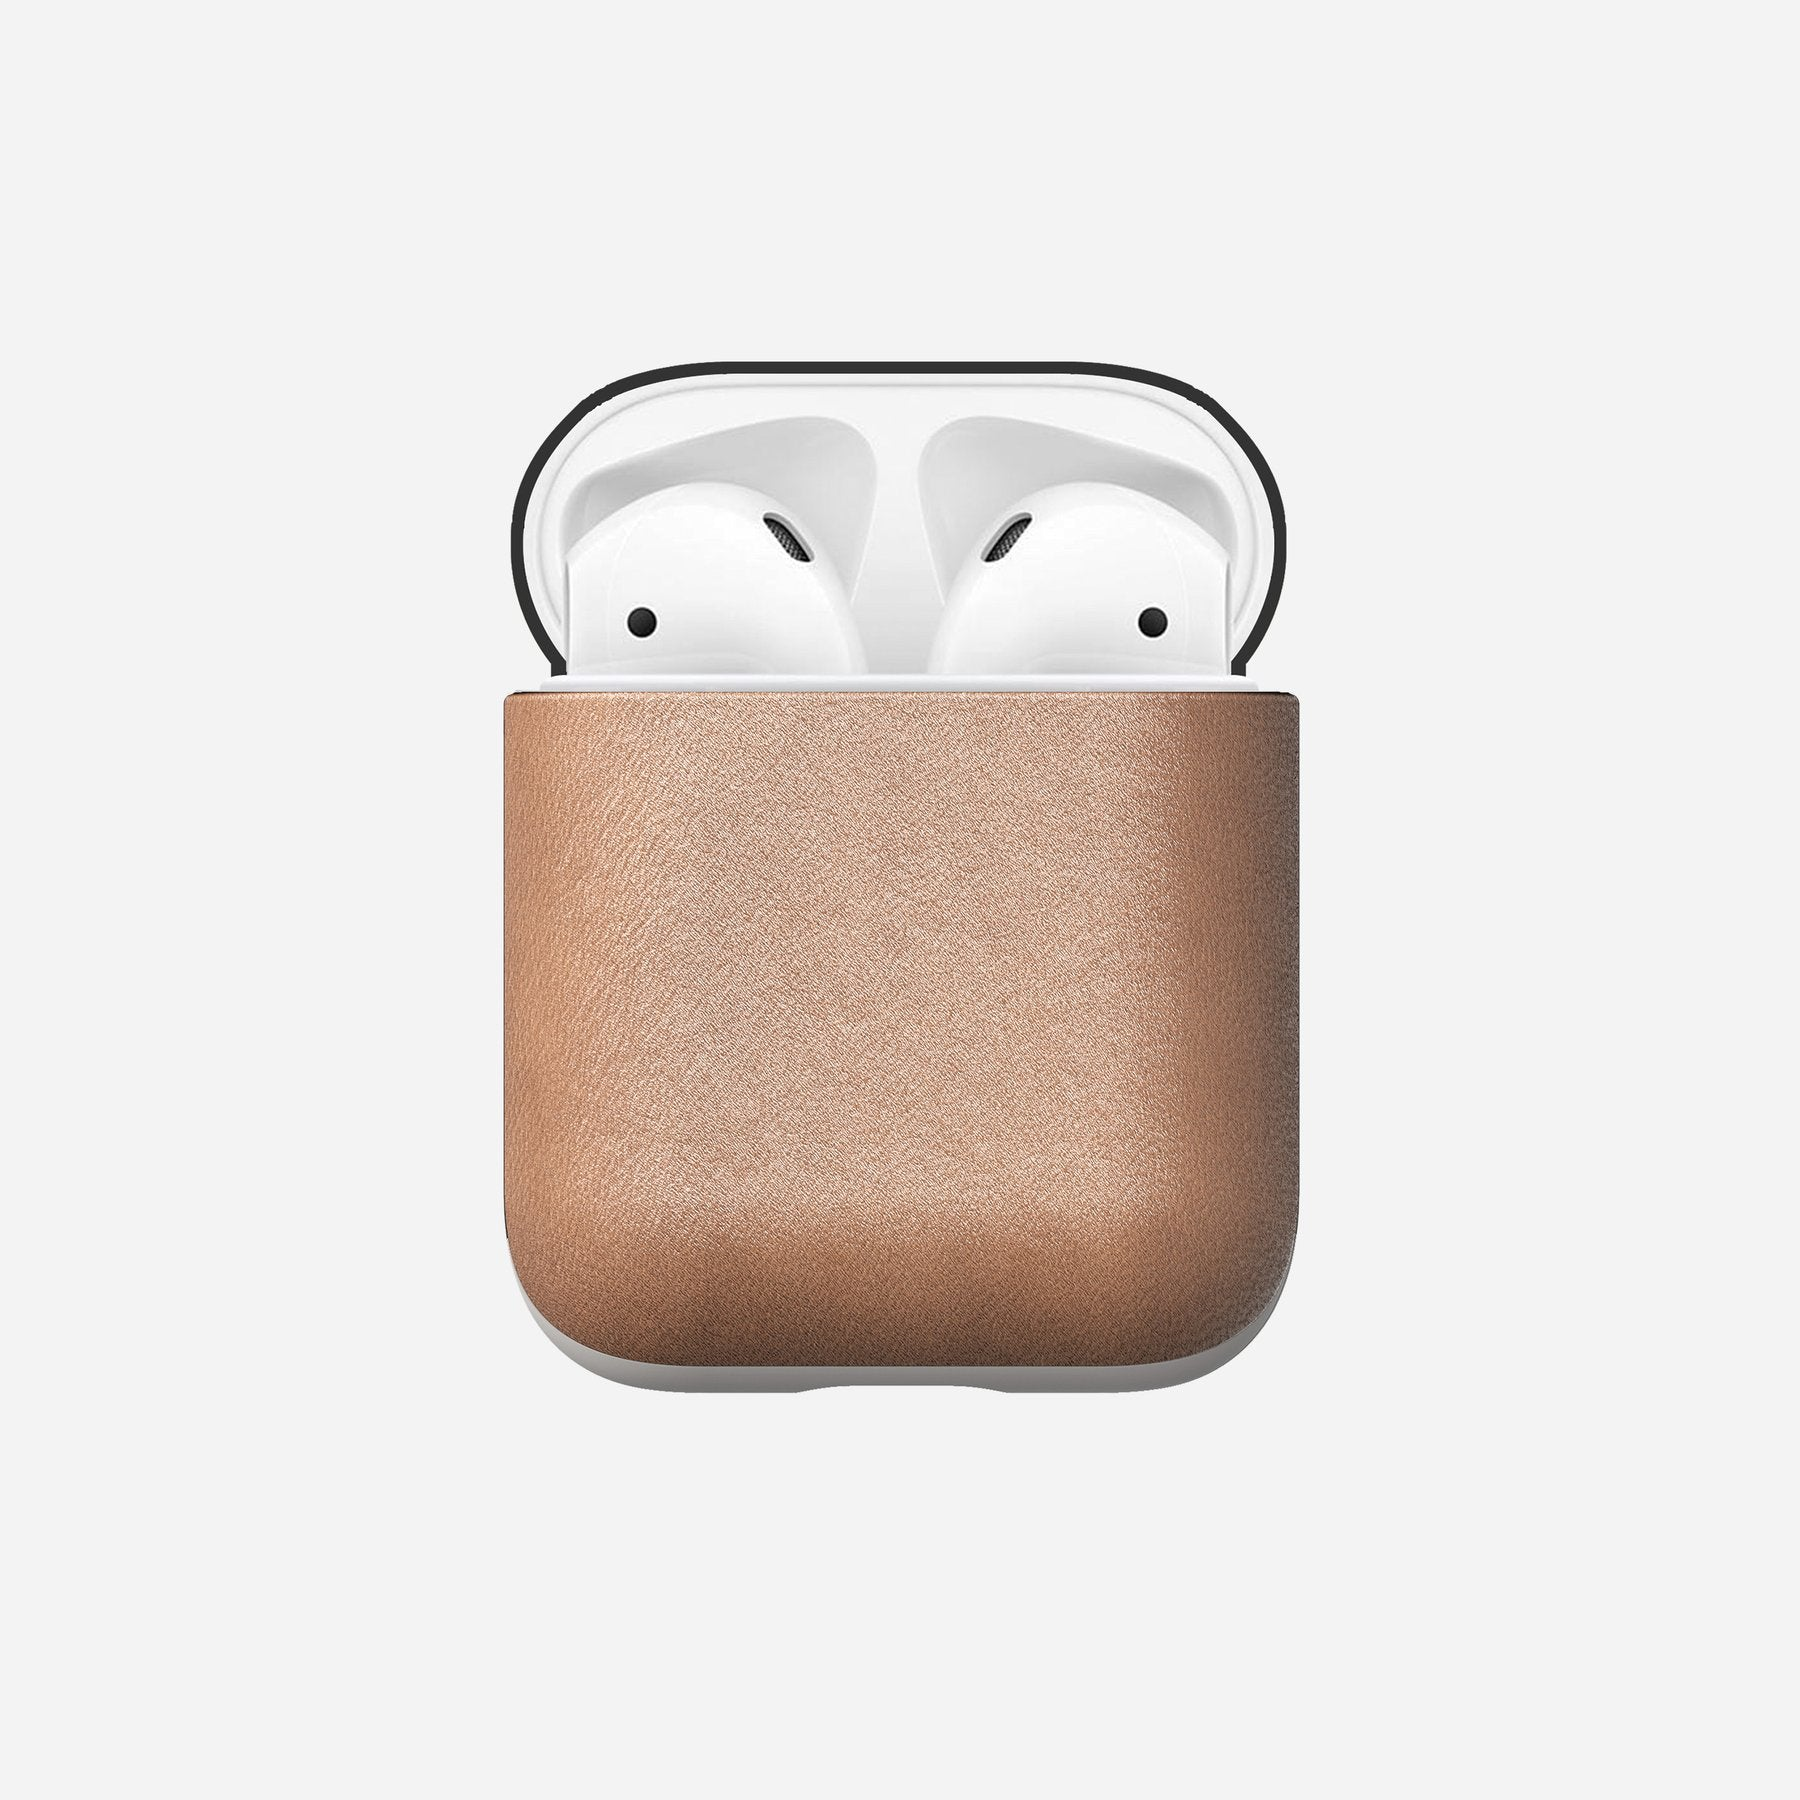 Rugged Case - Air Pods - Vegetable Tan